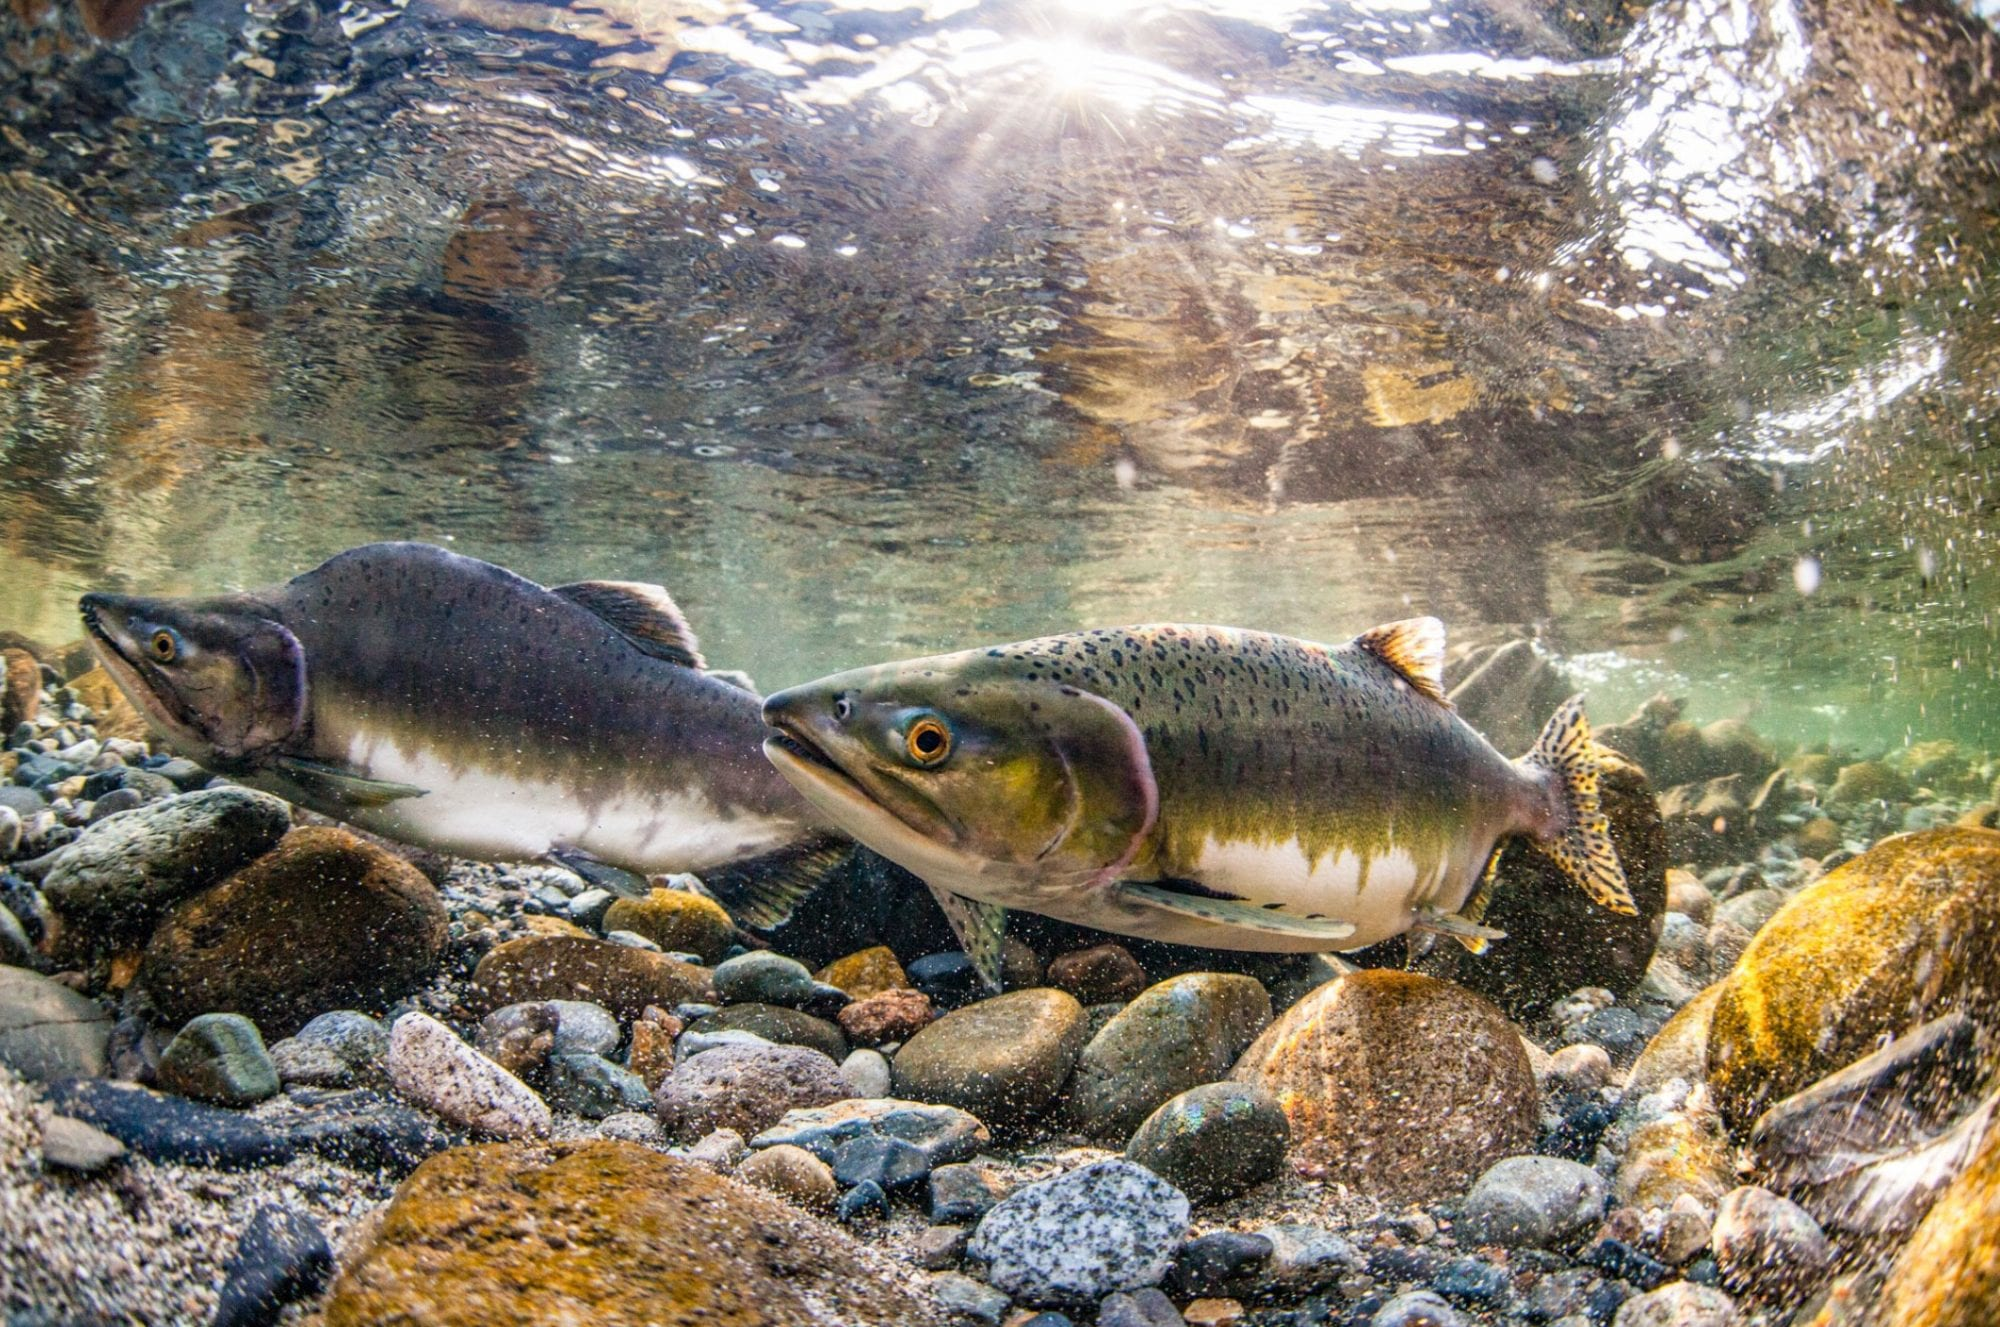 THE PLIGHT OF THE WILD SALMON